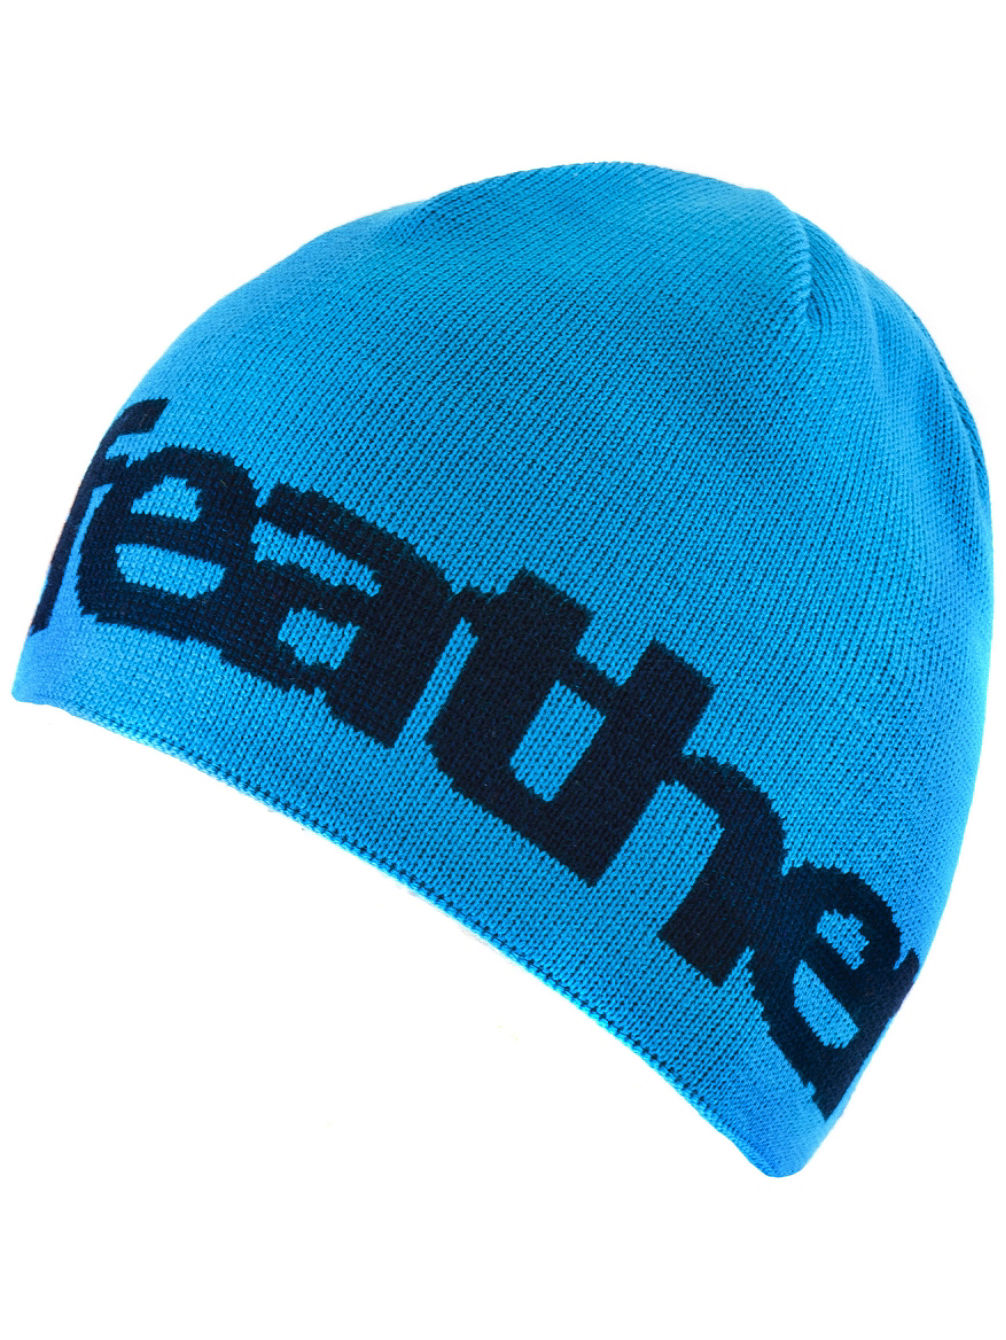 Fuse Beanie Youth